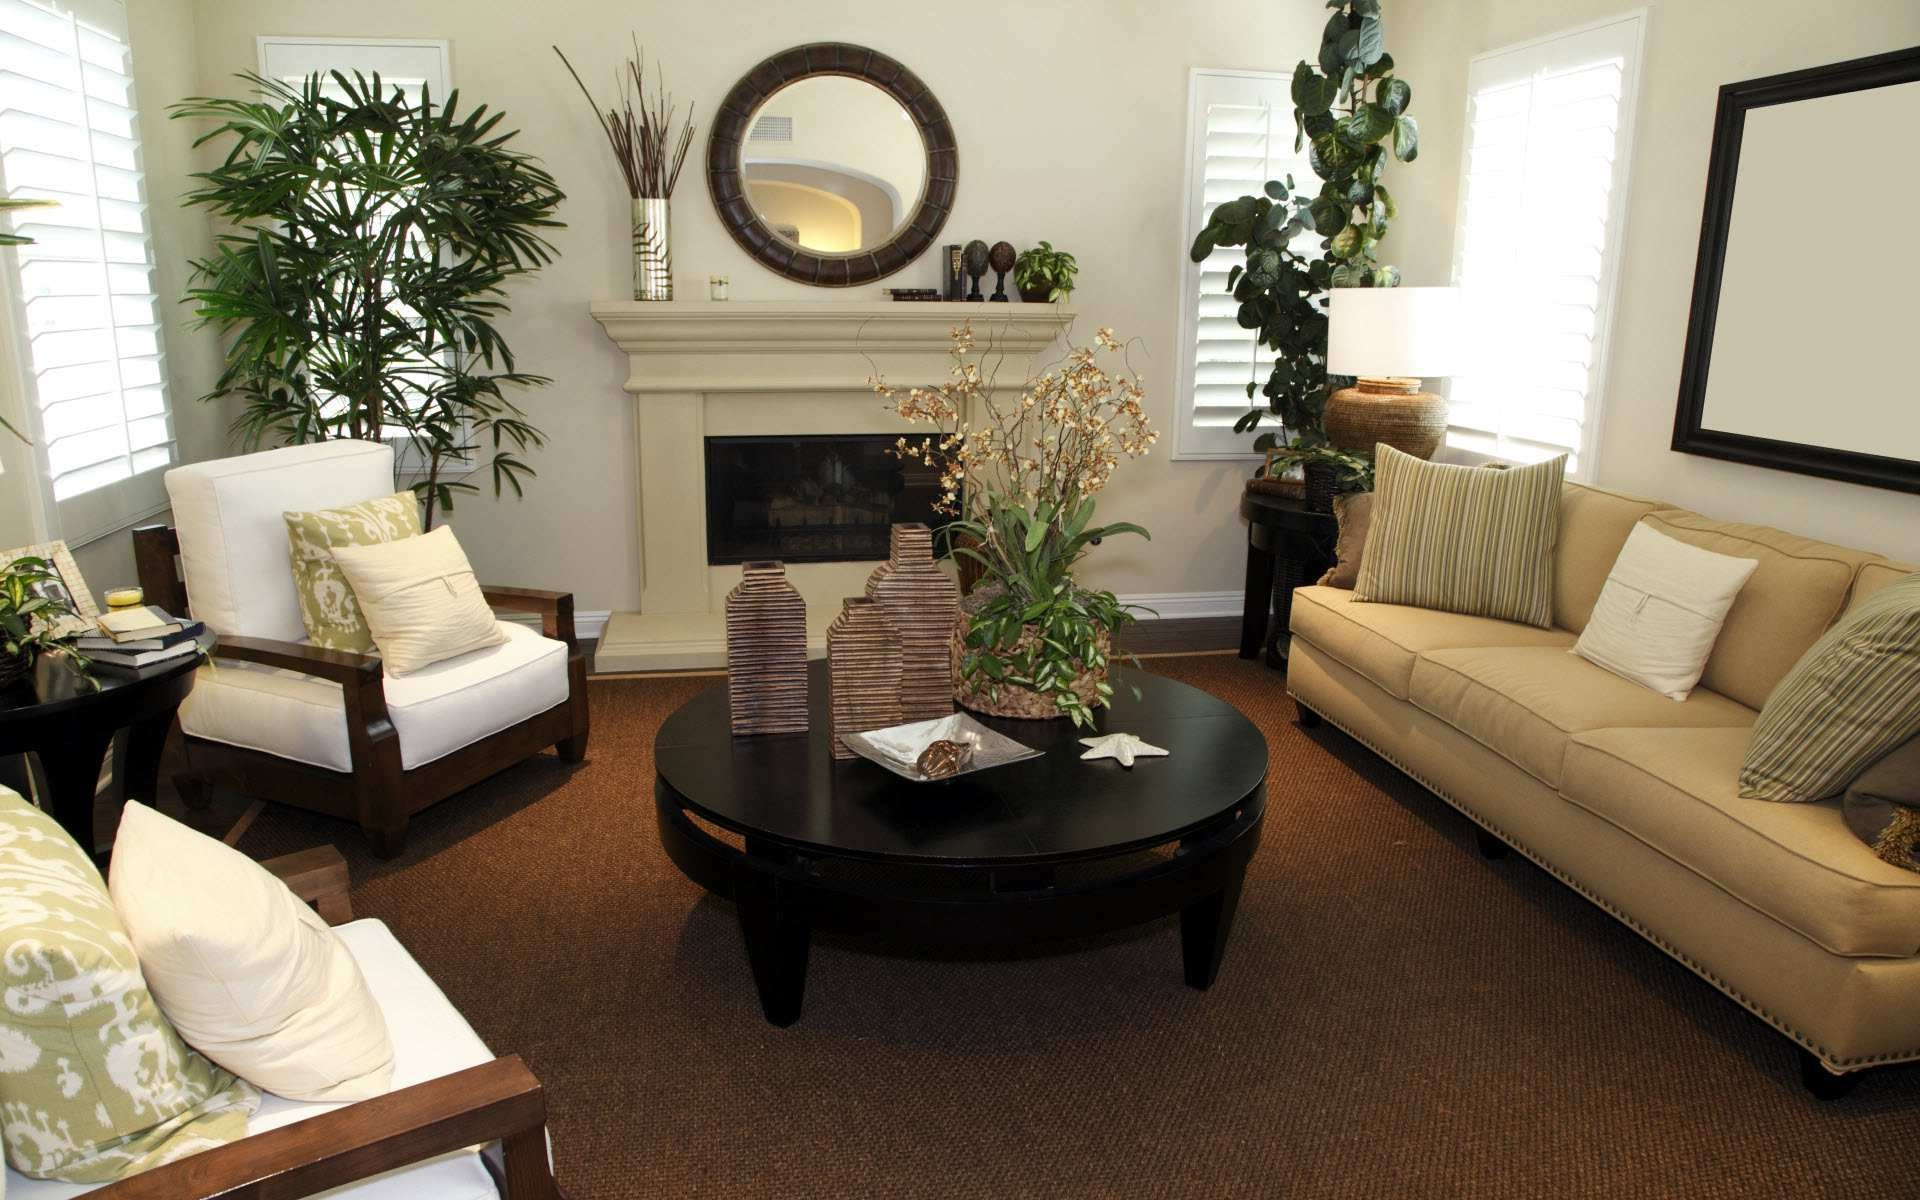 Best ideas about Small Family Room Ideas . Save or Pin Simple Way to Decorate Small Living Room with Brown Color Now.